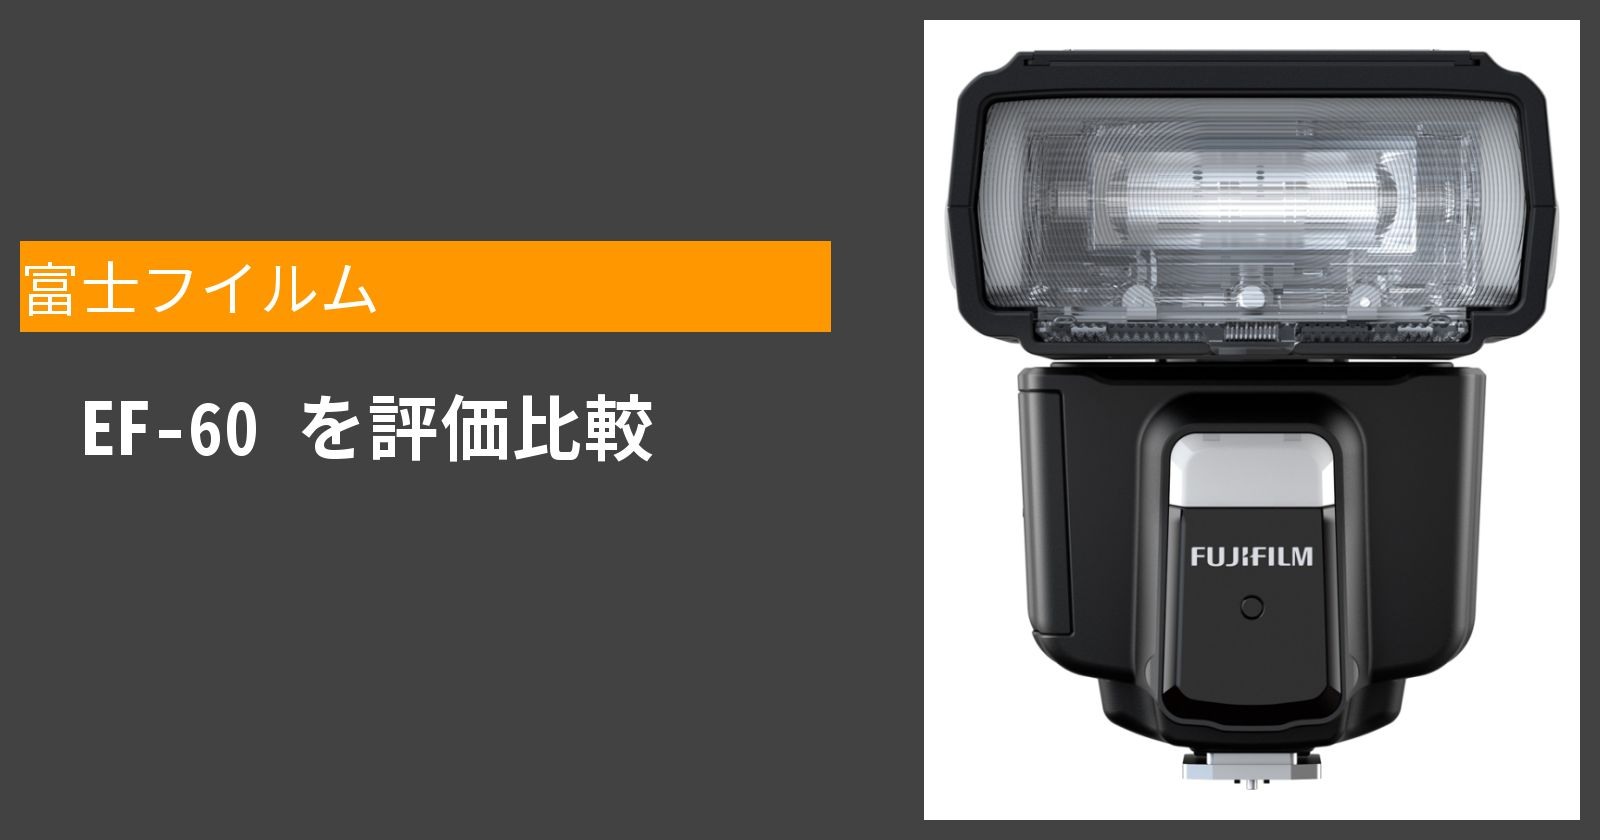 EF-60を徹底評価